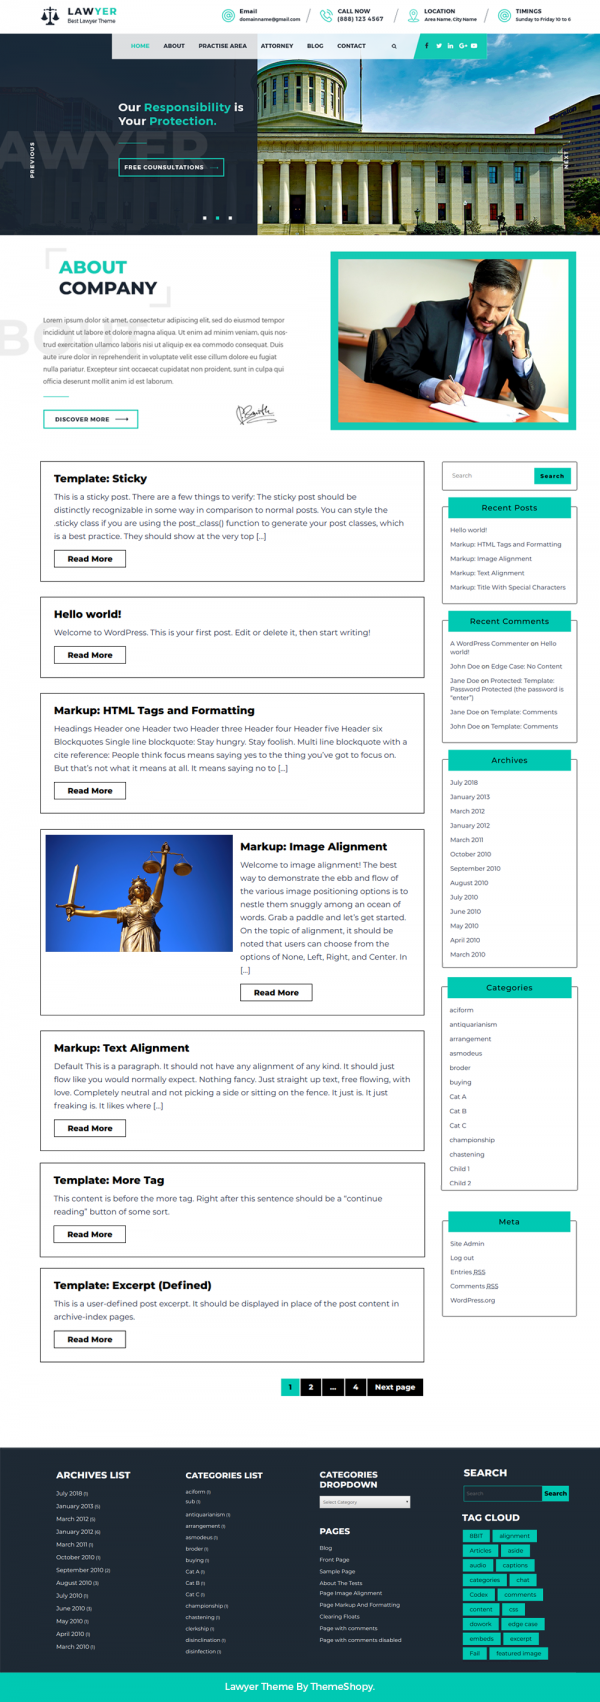 Free Lawyer WordPress Theme